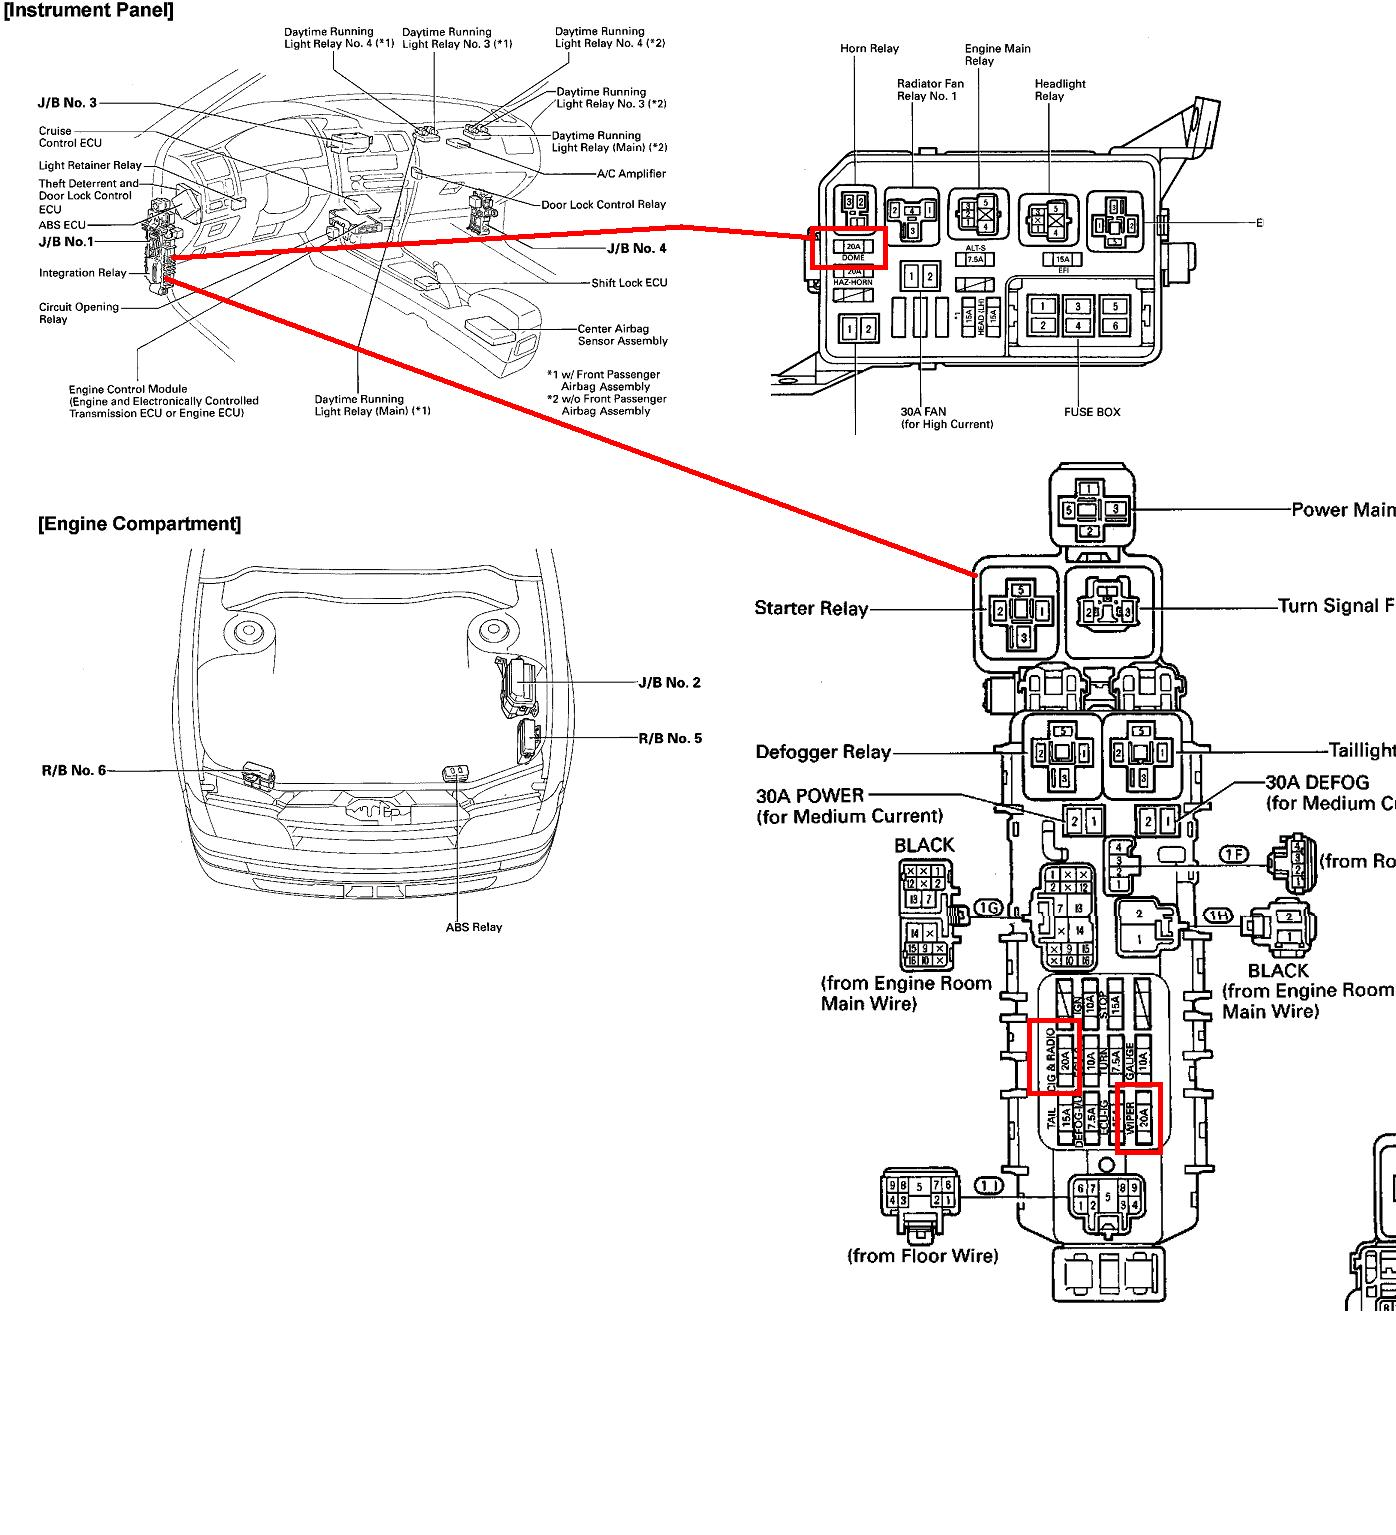 toyota corolla 02 fuse box wiring diagram todaystoyota corolla fuse box radio simple wiring diagram schema 2004 toyota corolla fuse locations toyota corolla 02 fuse box